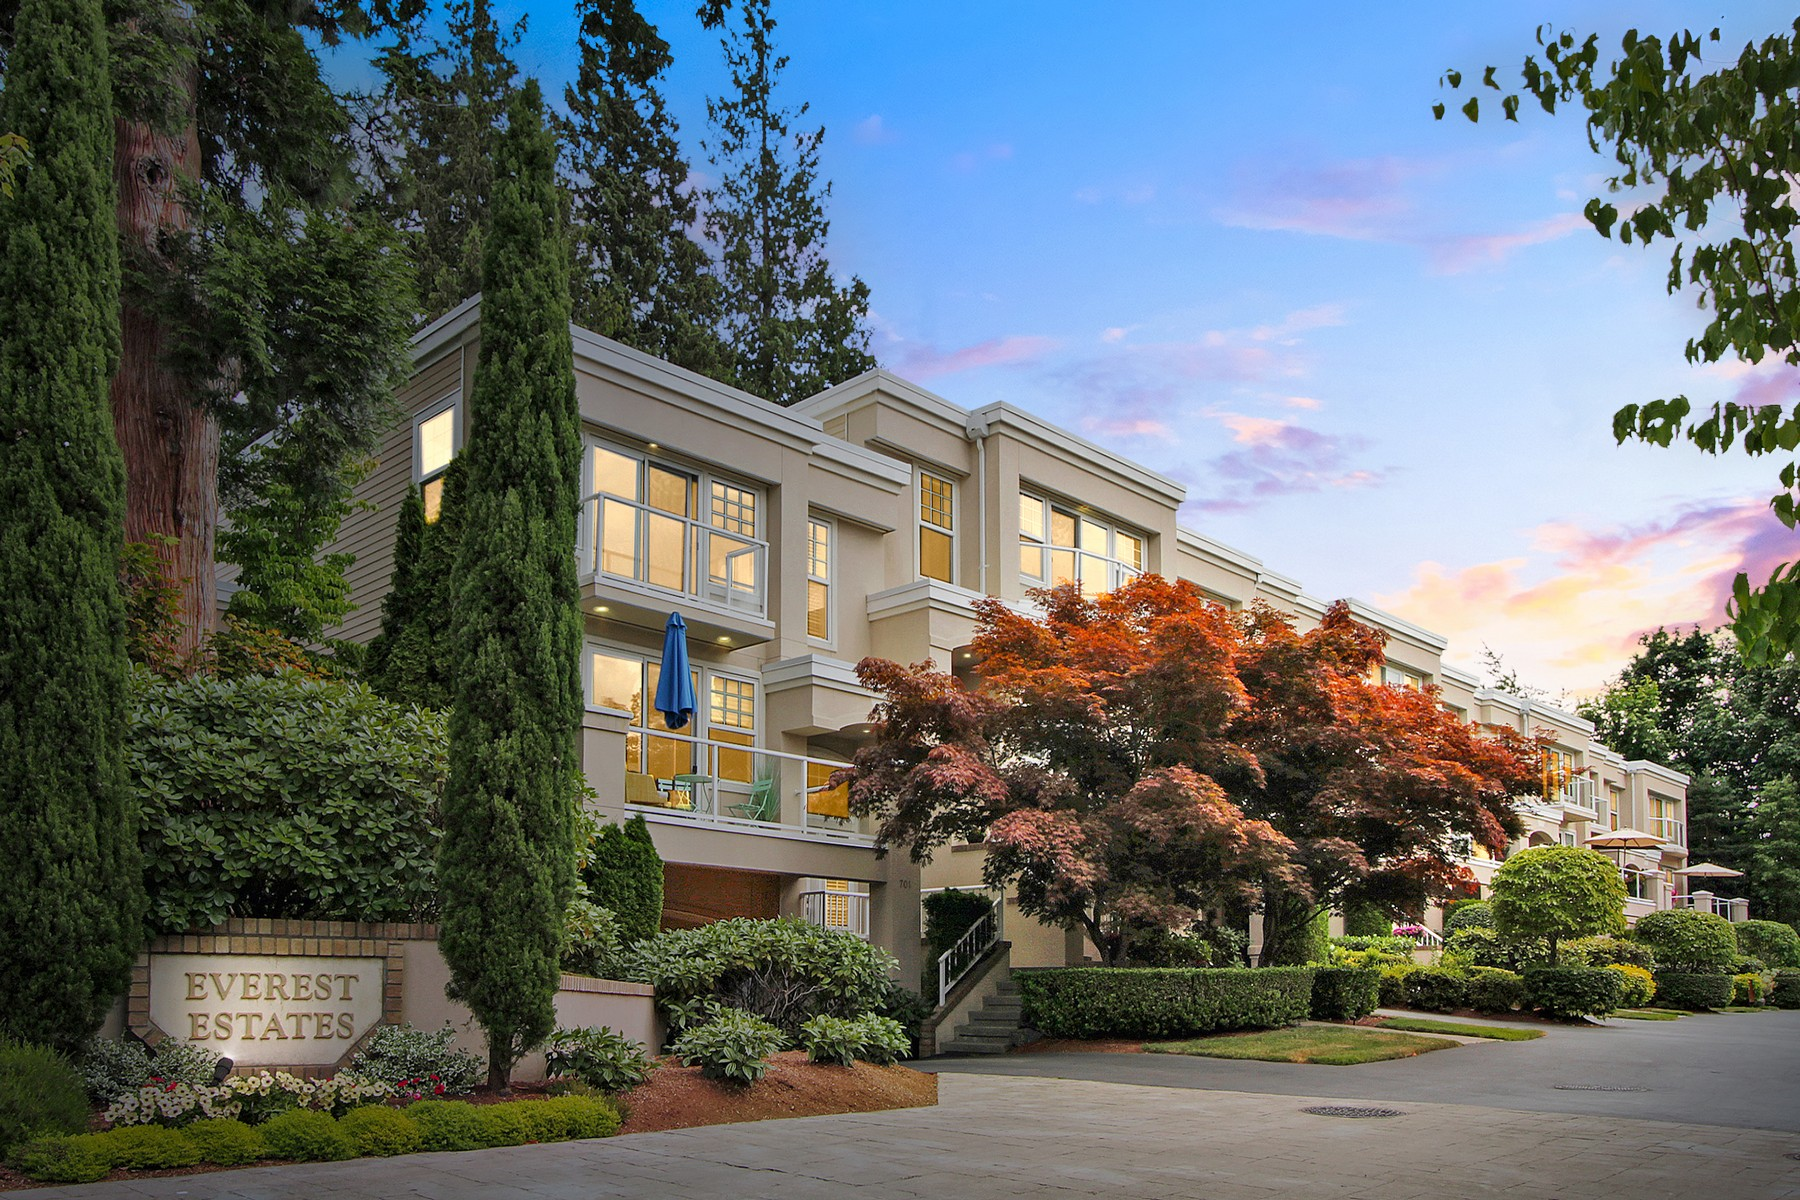 Condominium for Sale at Houghton Townhome 703 9th Ave S Kirkland, Washington 98033 United States